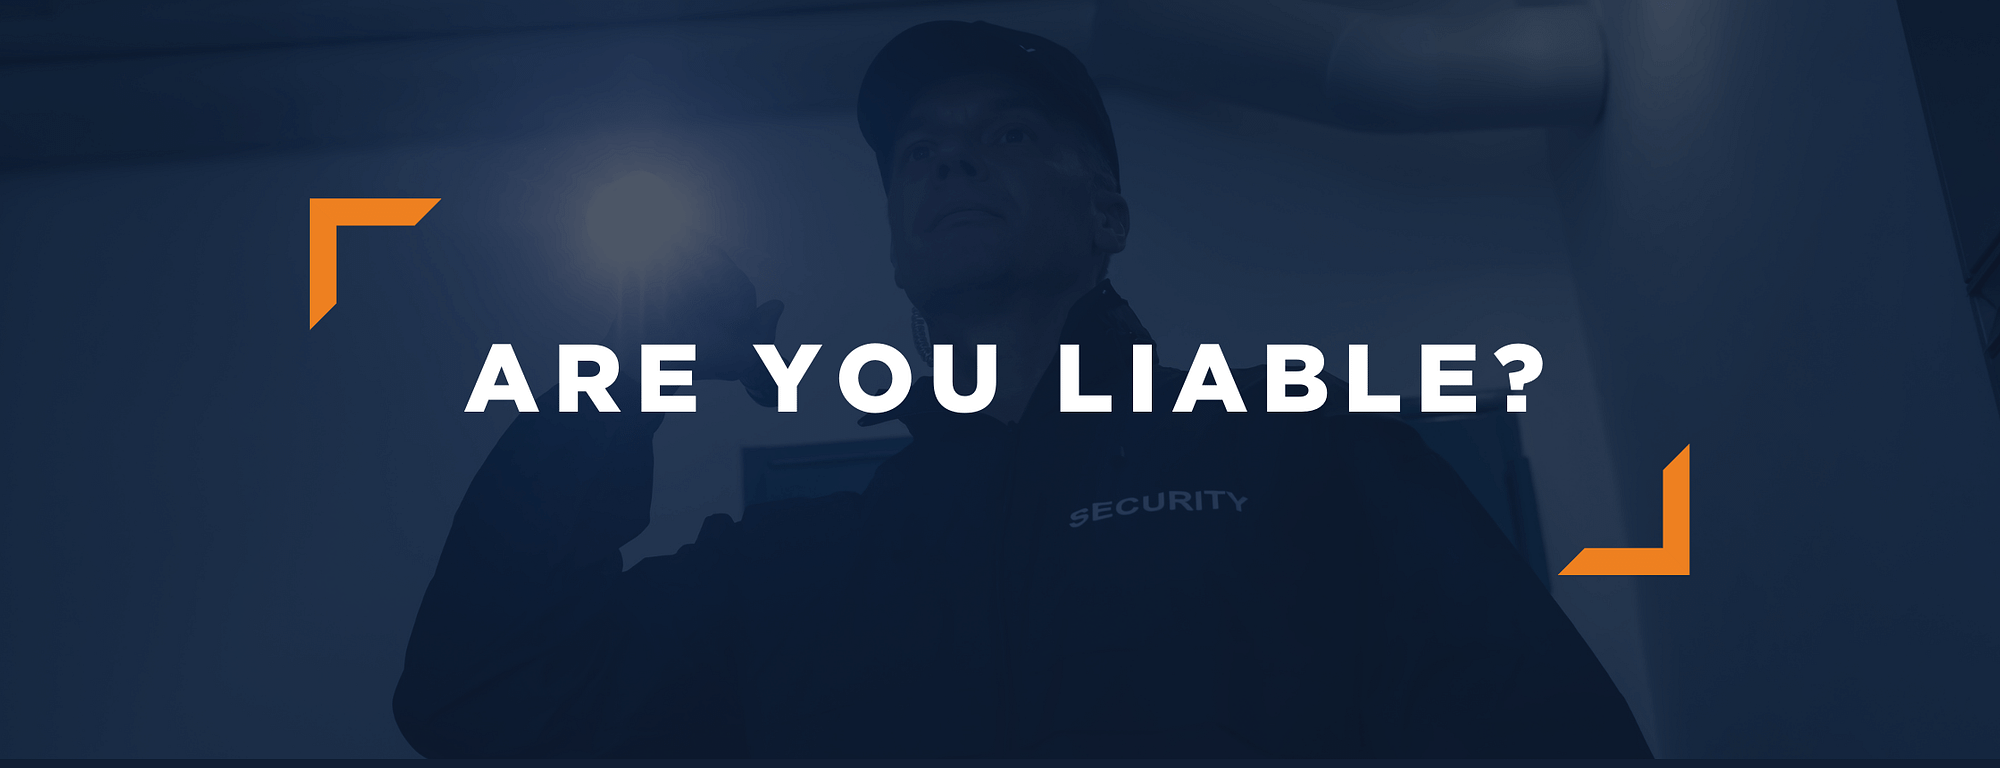 BPS Security - Are You Liable